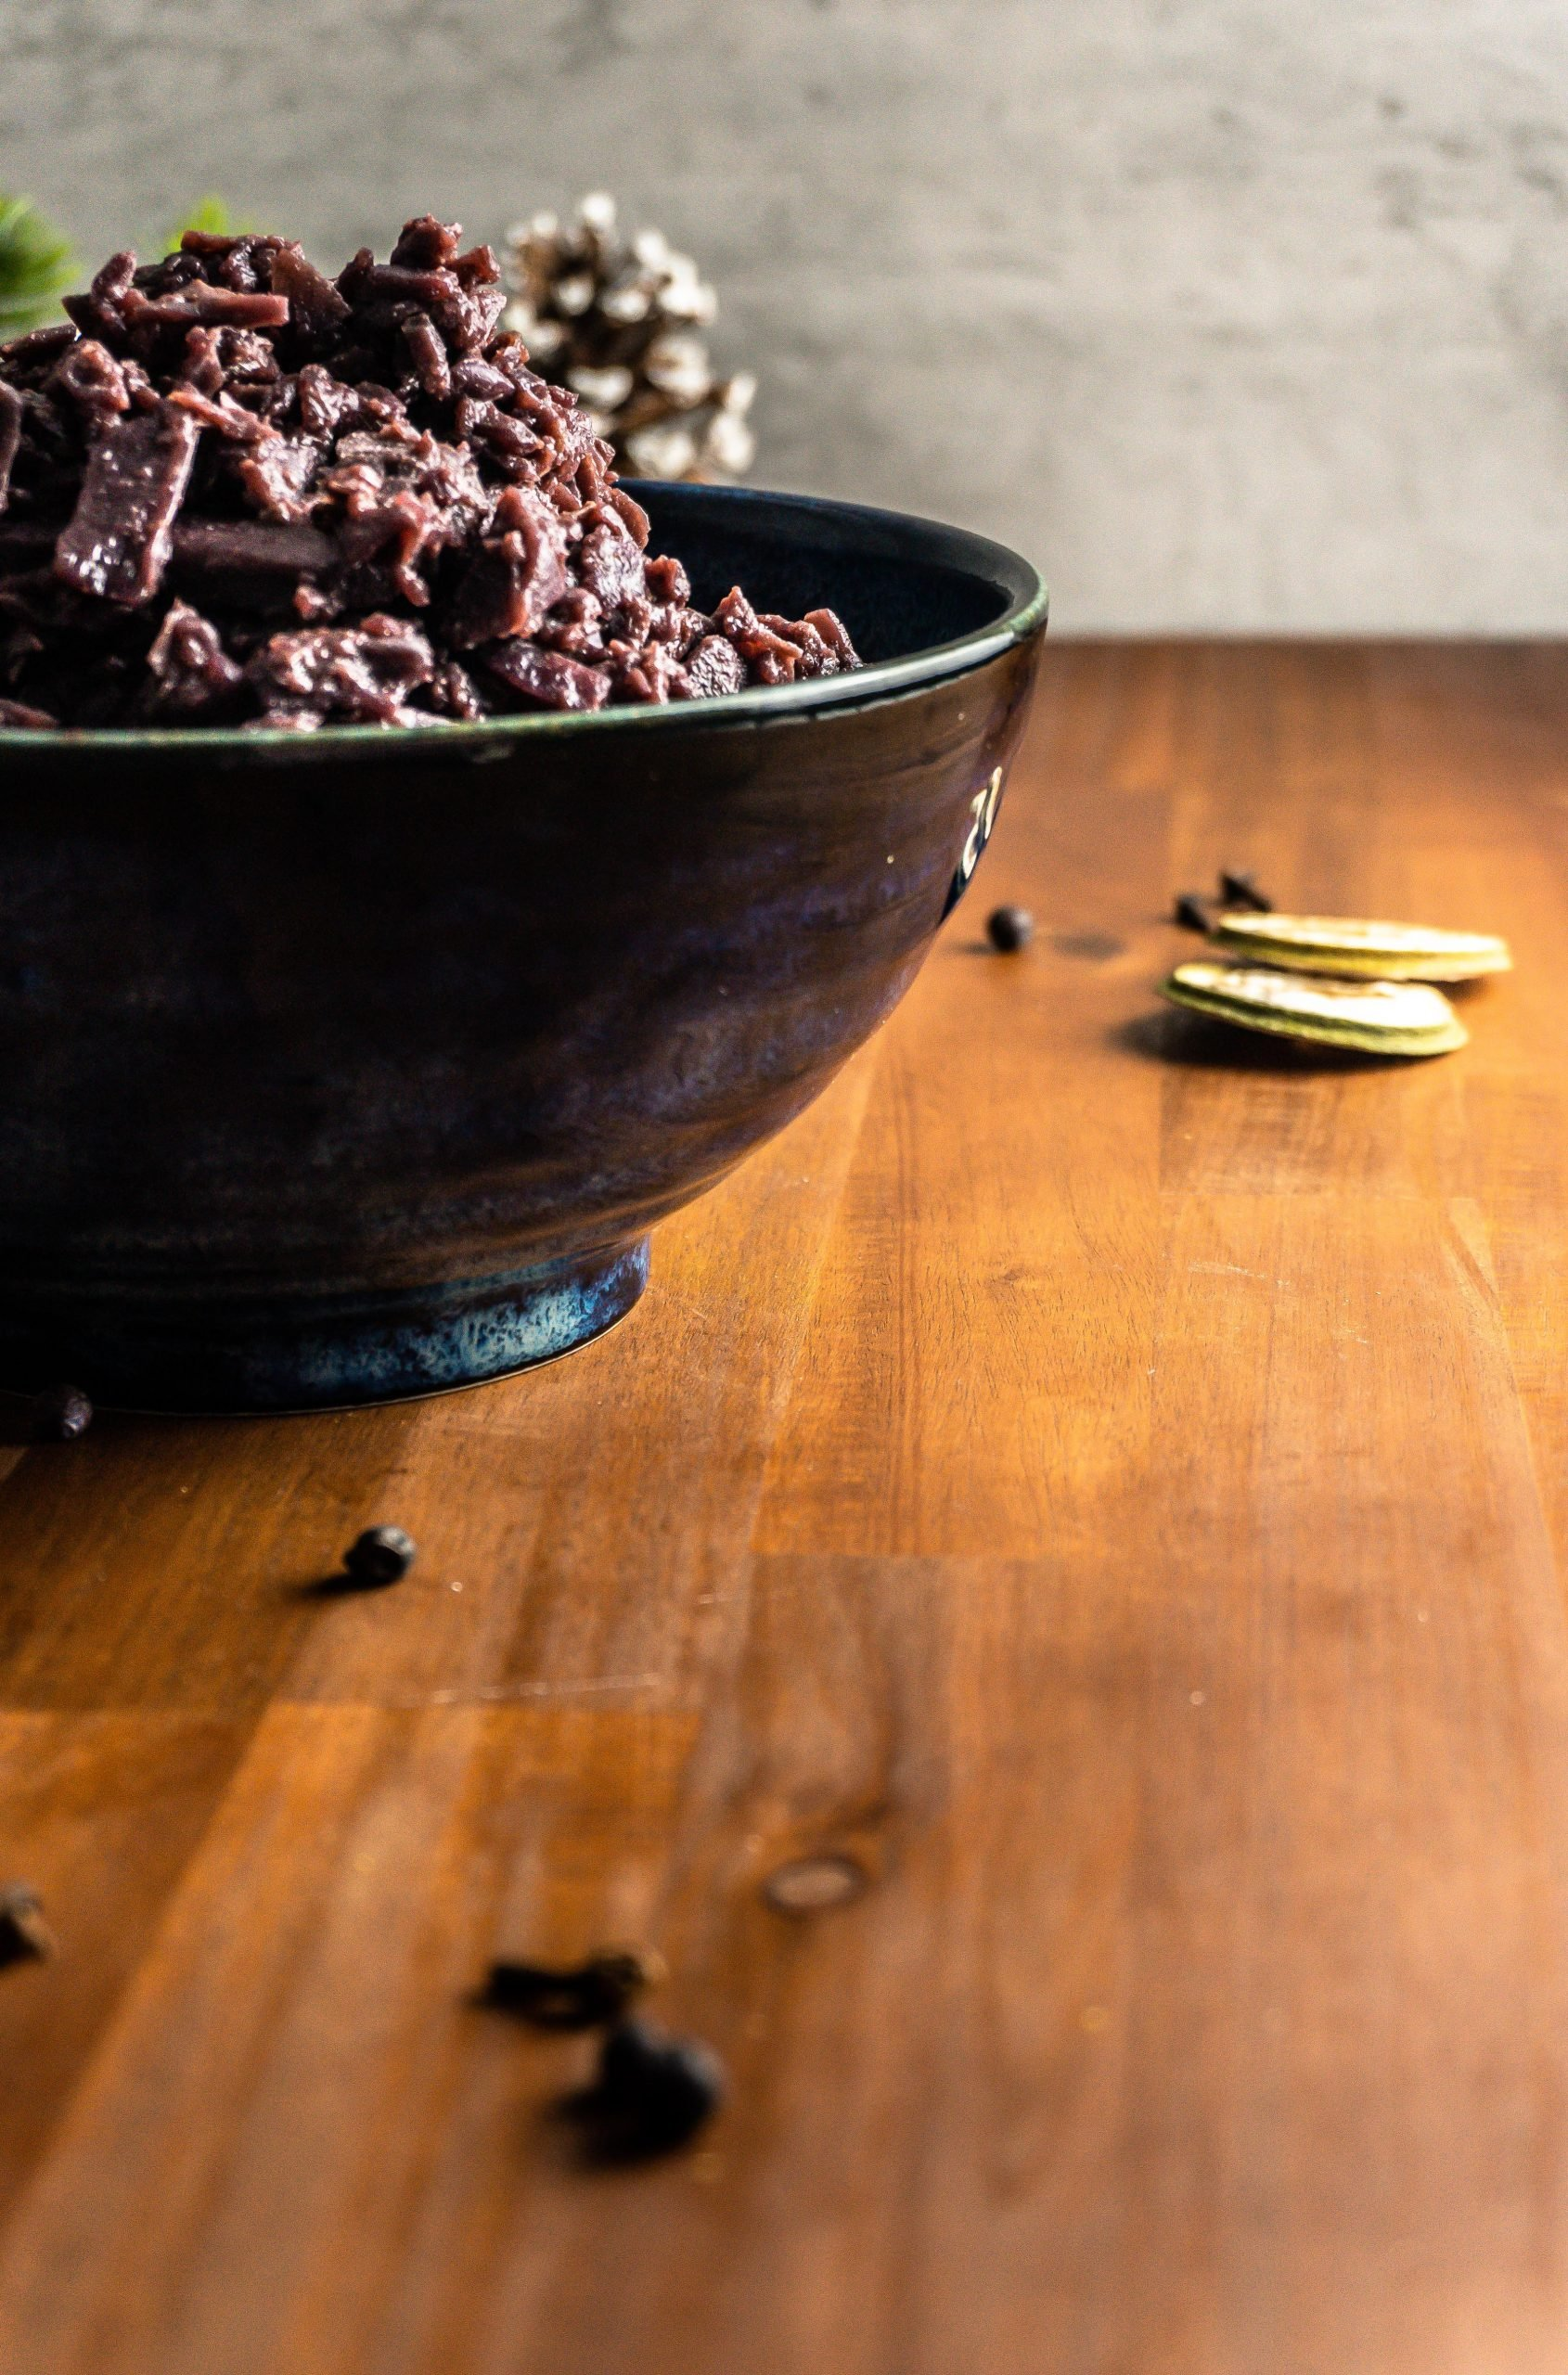 Clove and juniper berries blurred in the fron with German Red Cabbage (Rotkohl) visible in the background